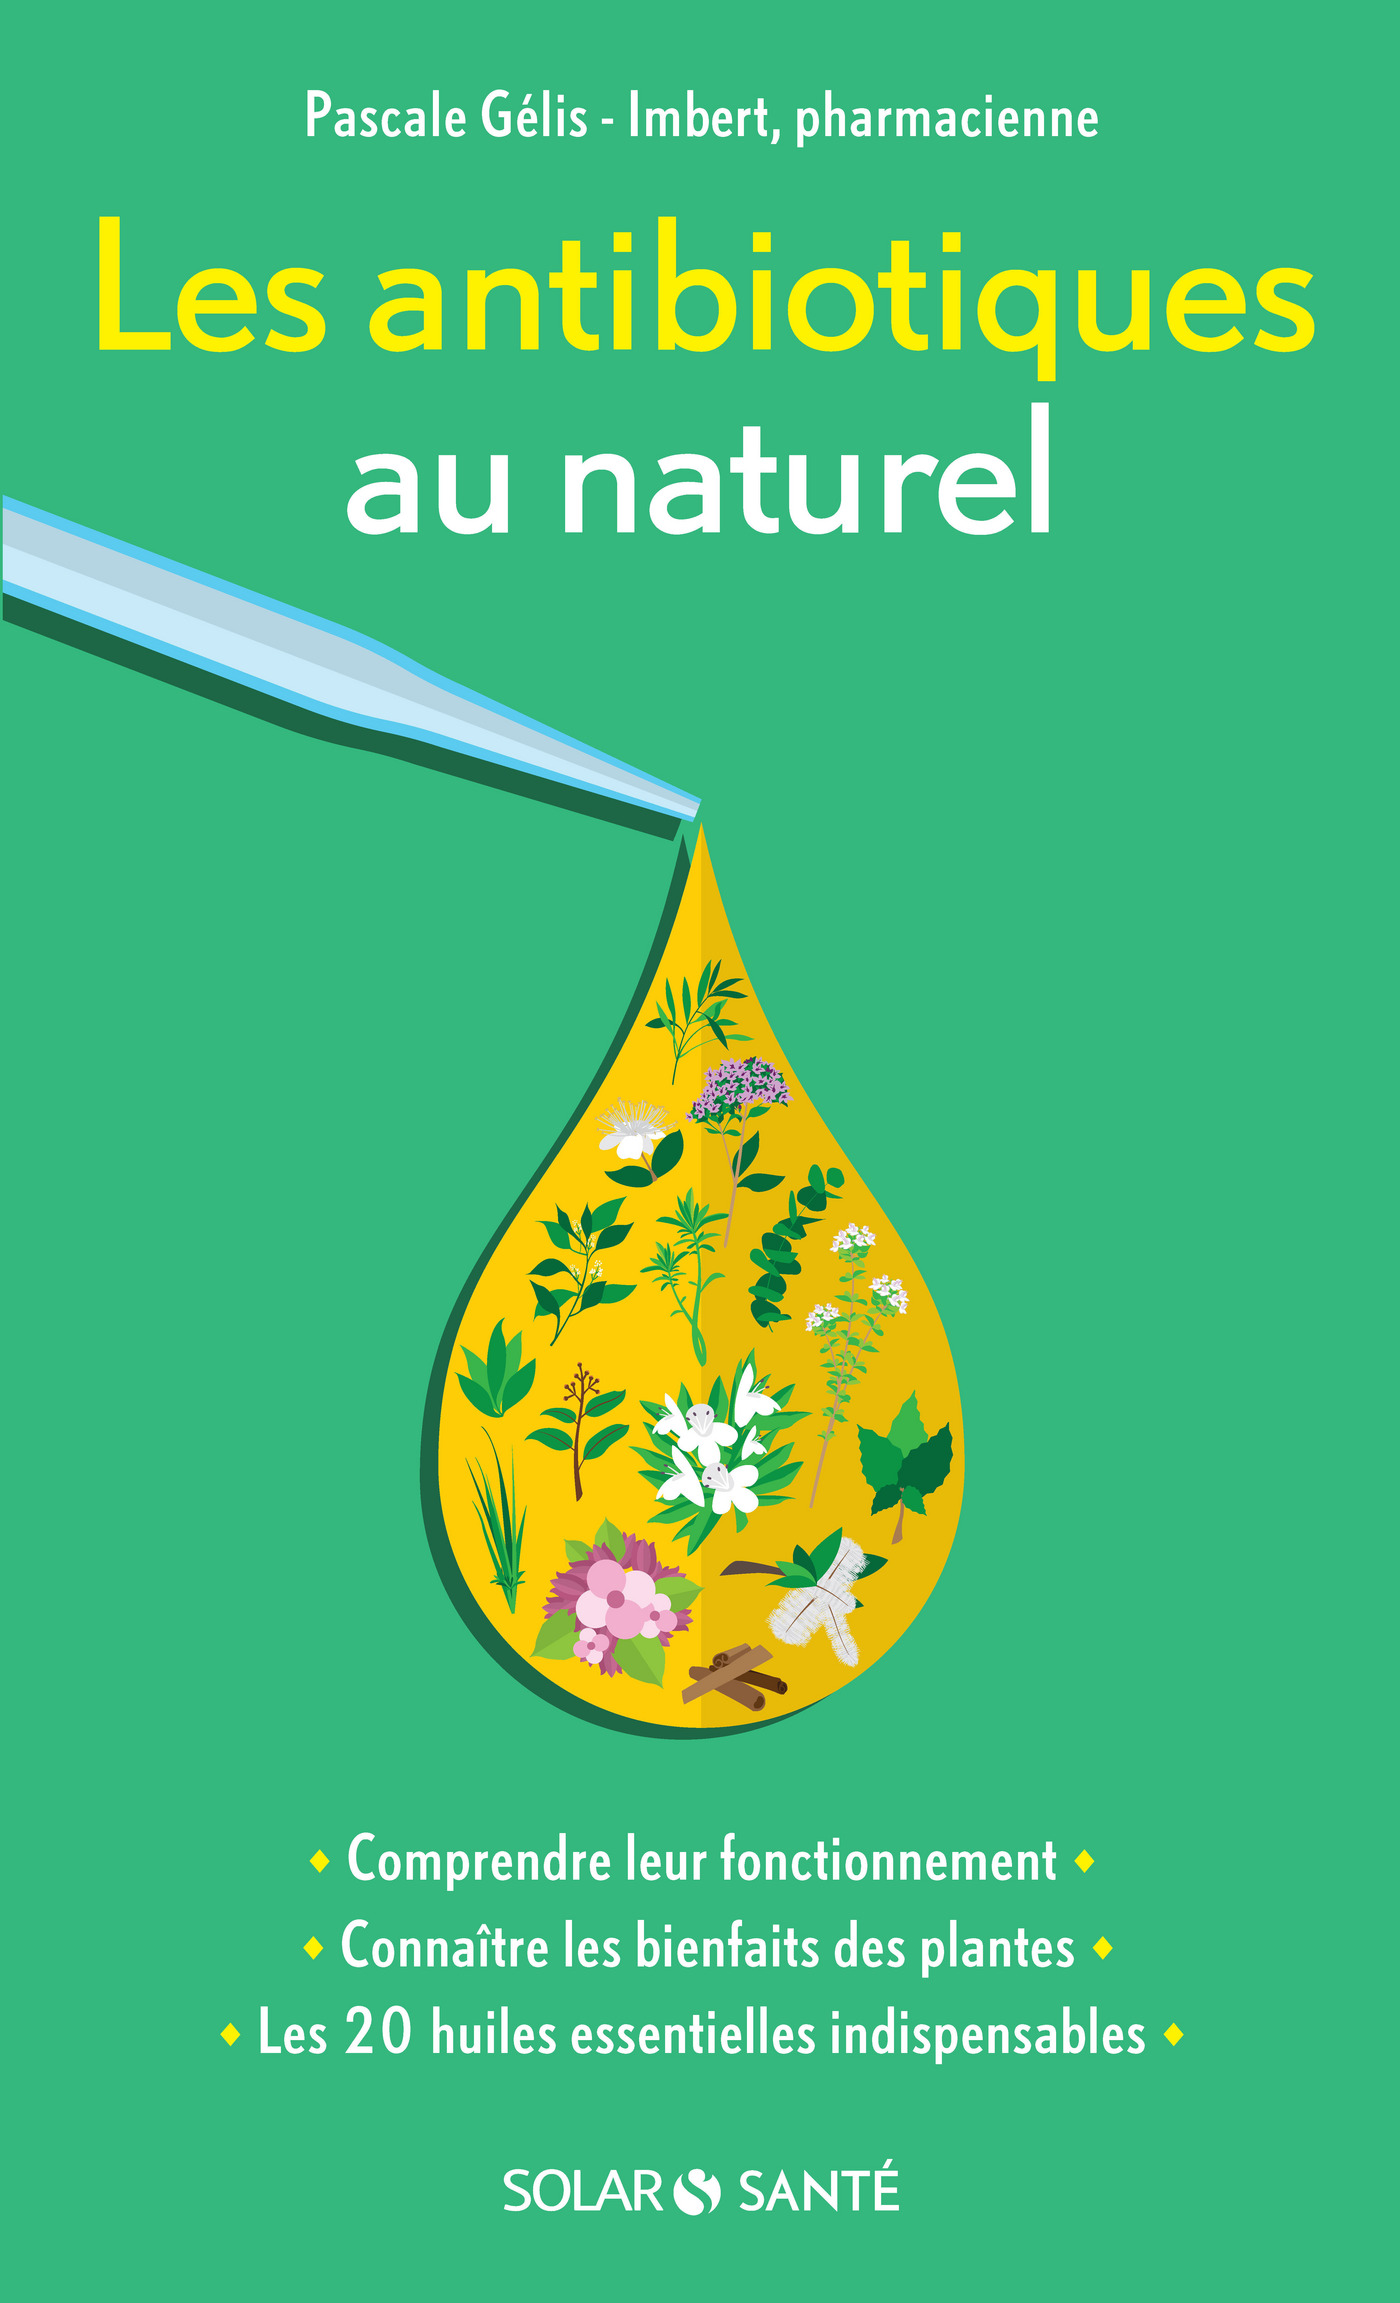 Les antibiotiques au naturel (ebook)